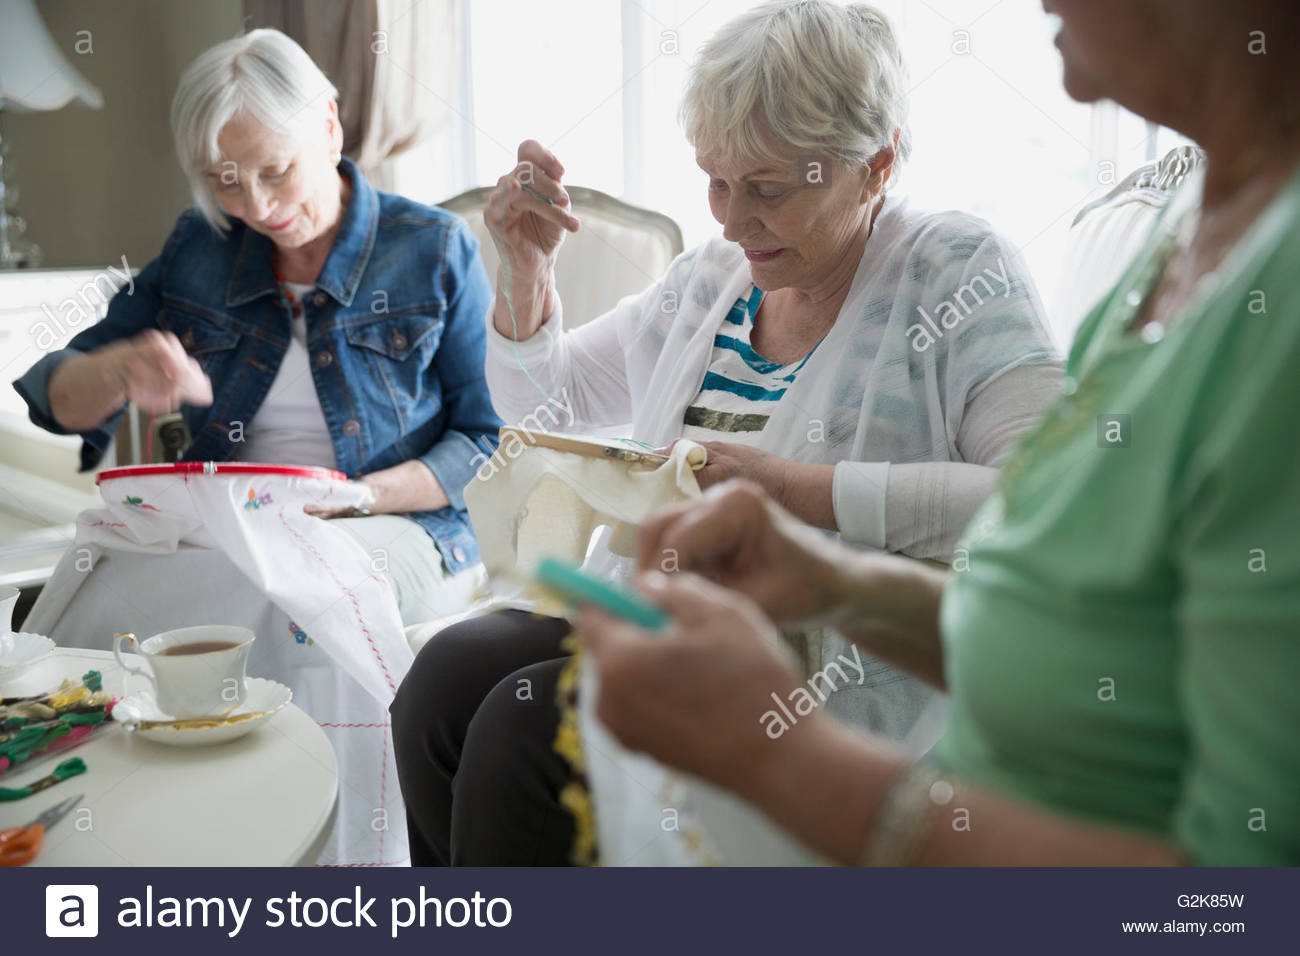 Senior women drinking tea and embroidering - Stock Image